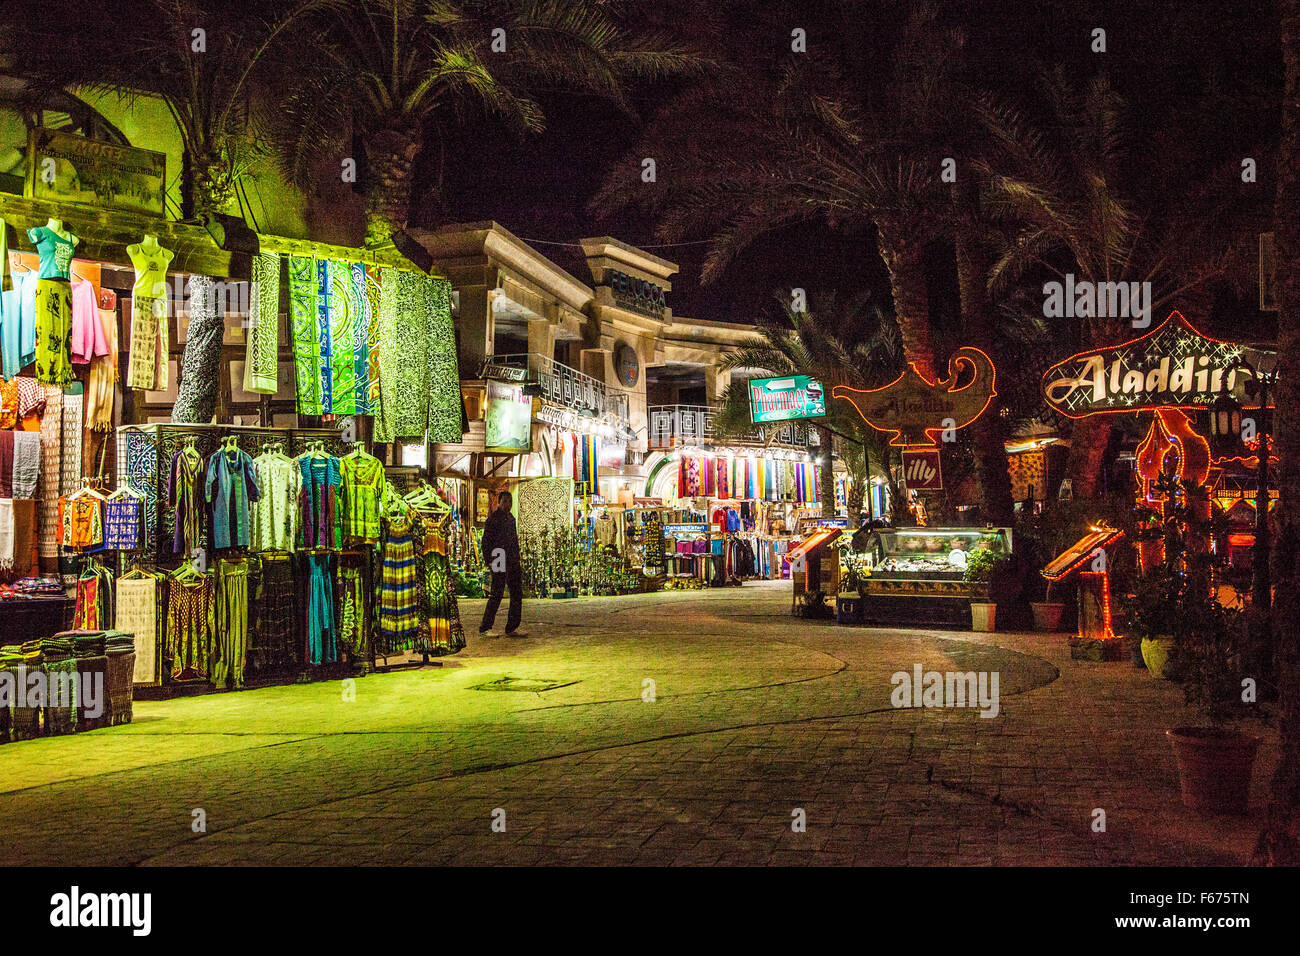 Main street of souvenir shops and restaurants at night in Dahab, Egypt. - Stock Image